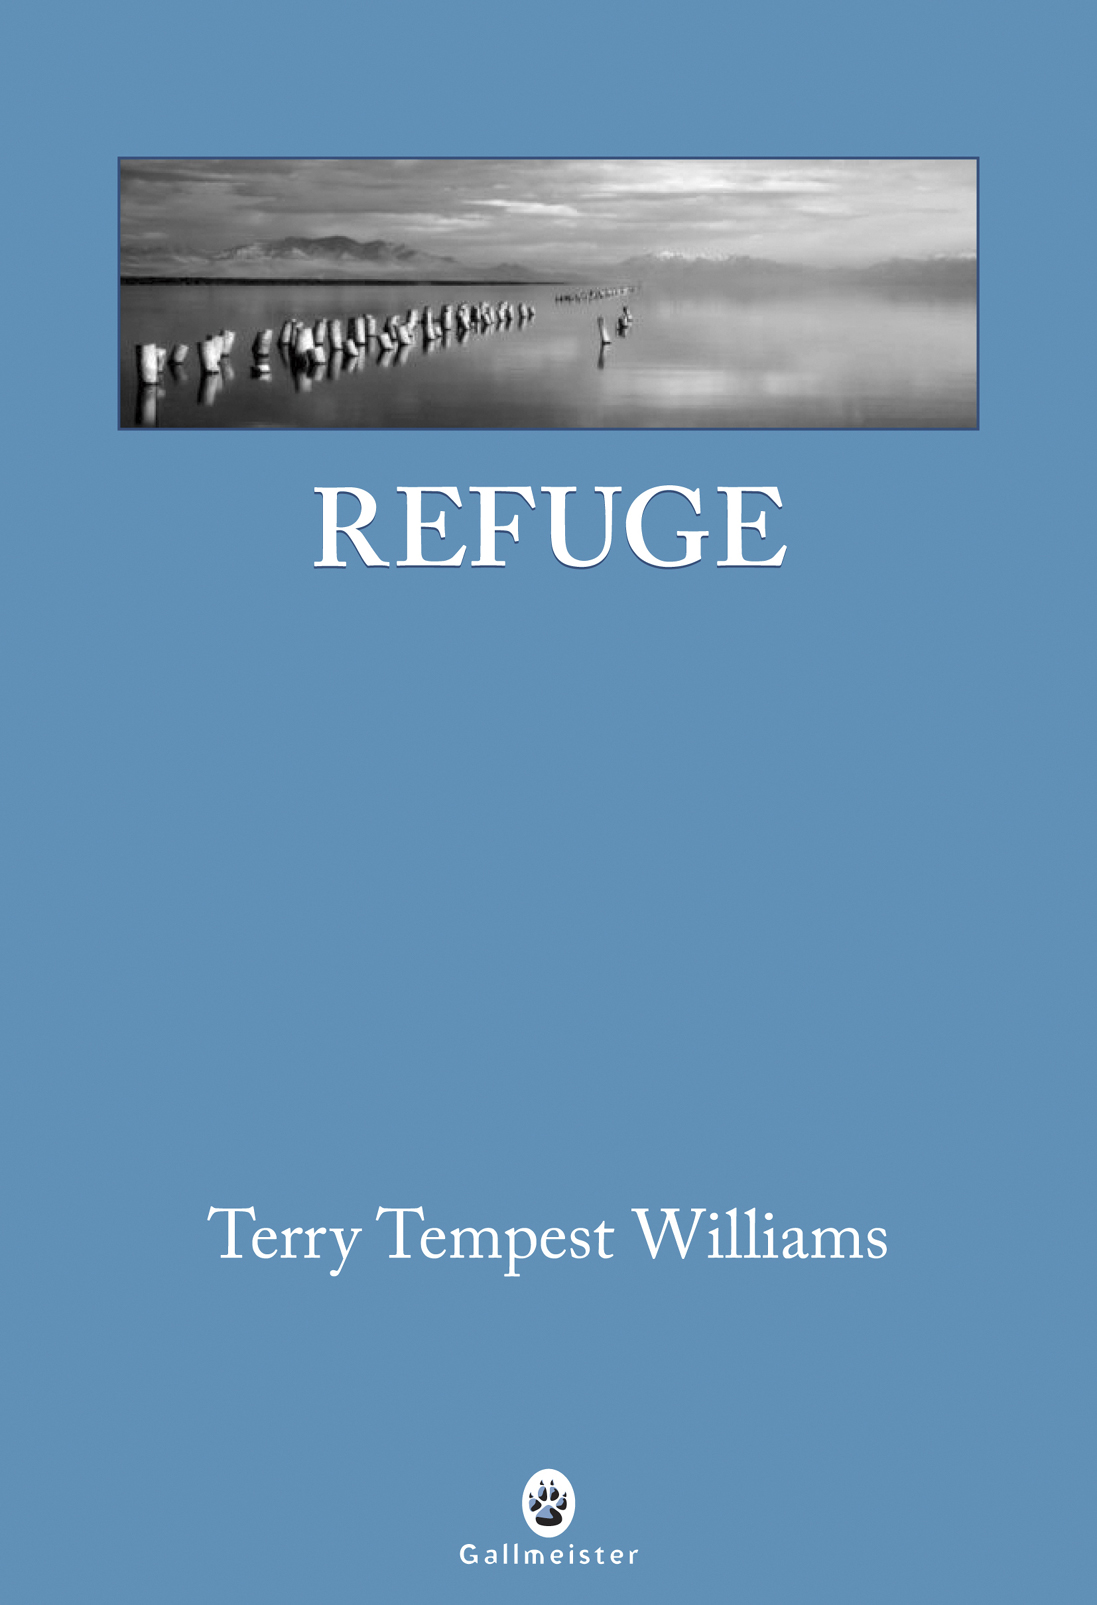 the use of logos ethos and pathos in the book refuge by terry tempest williams